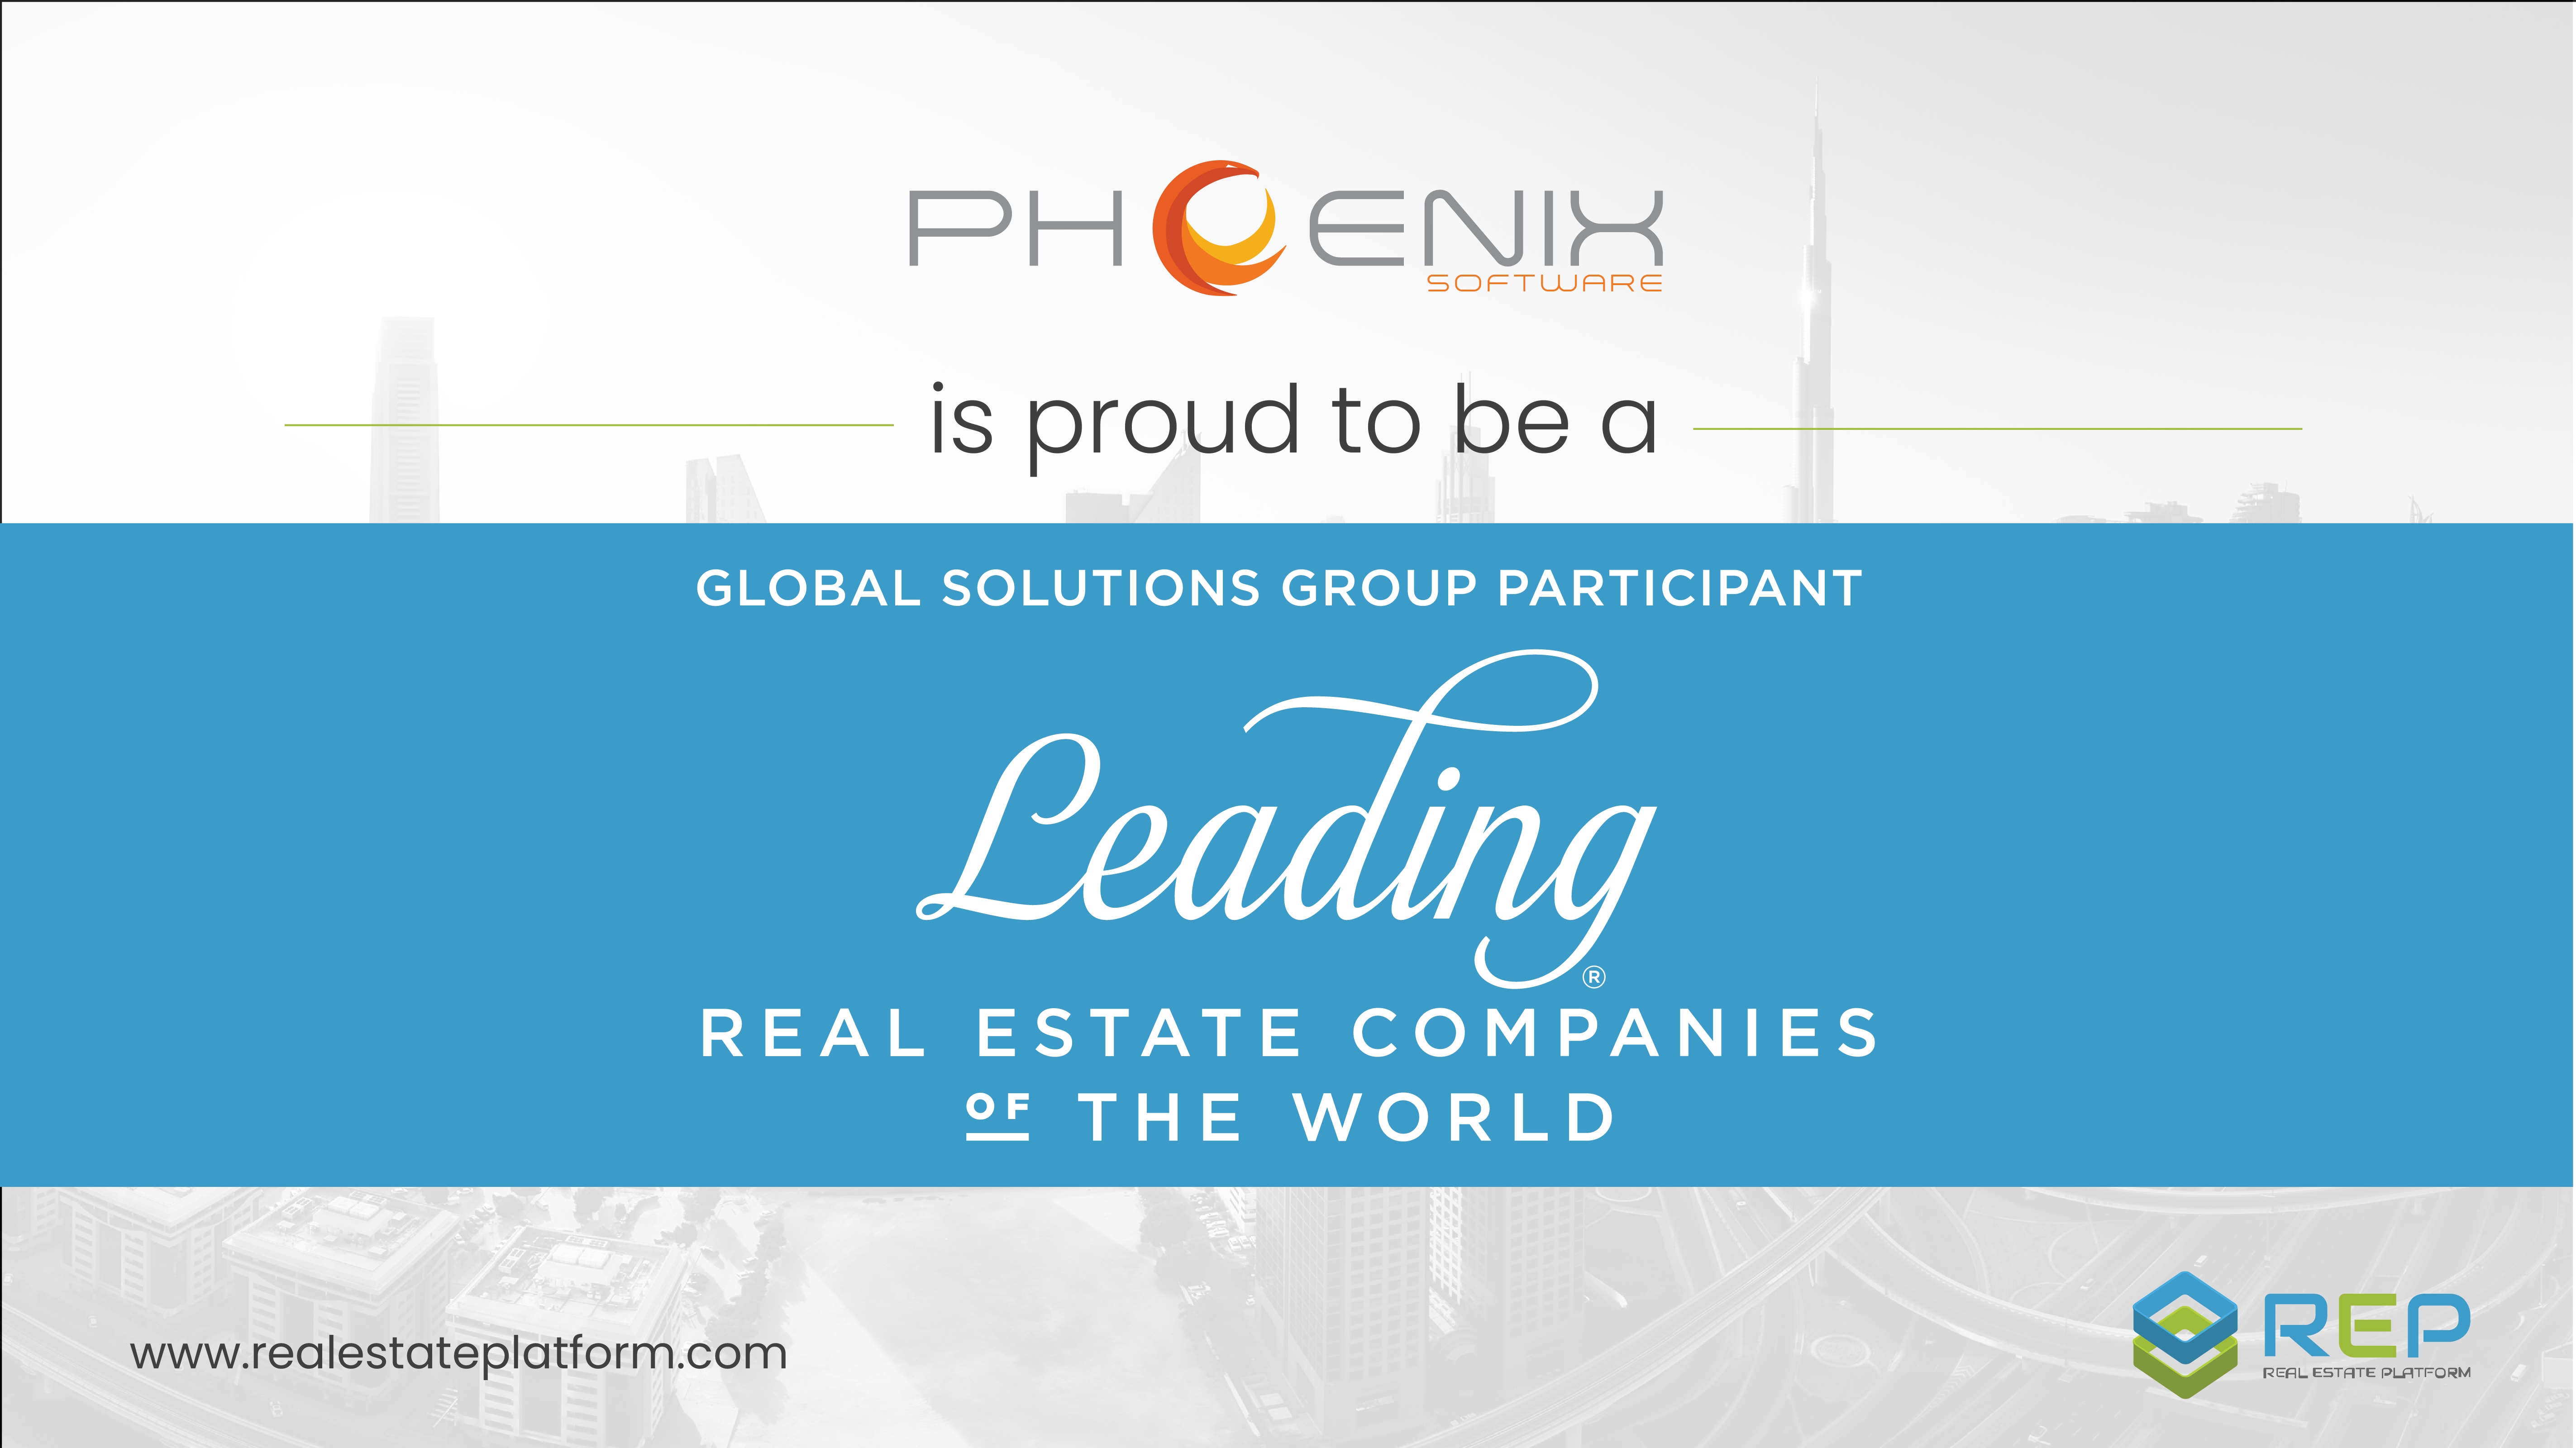 LeadingRE Selects Phoenix Software's REP to Participate in Global Solutions Group Program